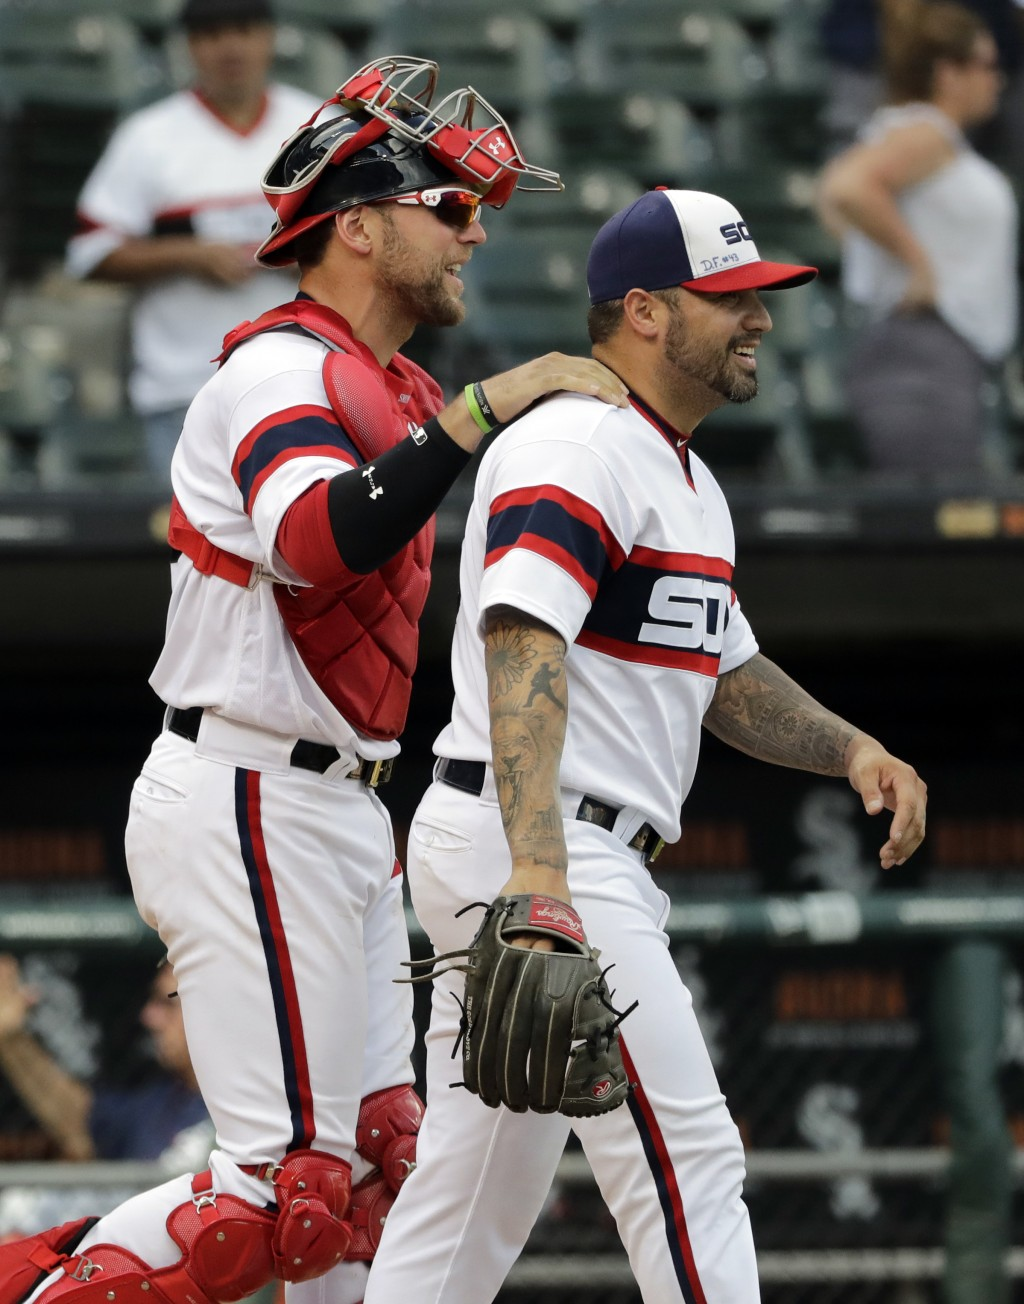 Chicago White Sox relief pitcher Hector Santiago, right, is congratulated by catcher Kevan Smith after the White Sox defeated the Boston Red Sox 8-0 i...